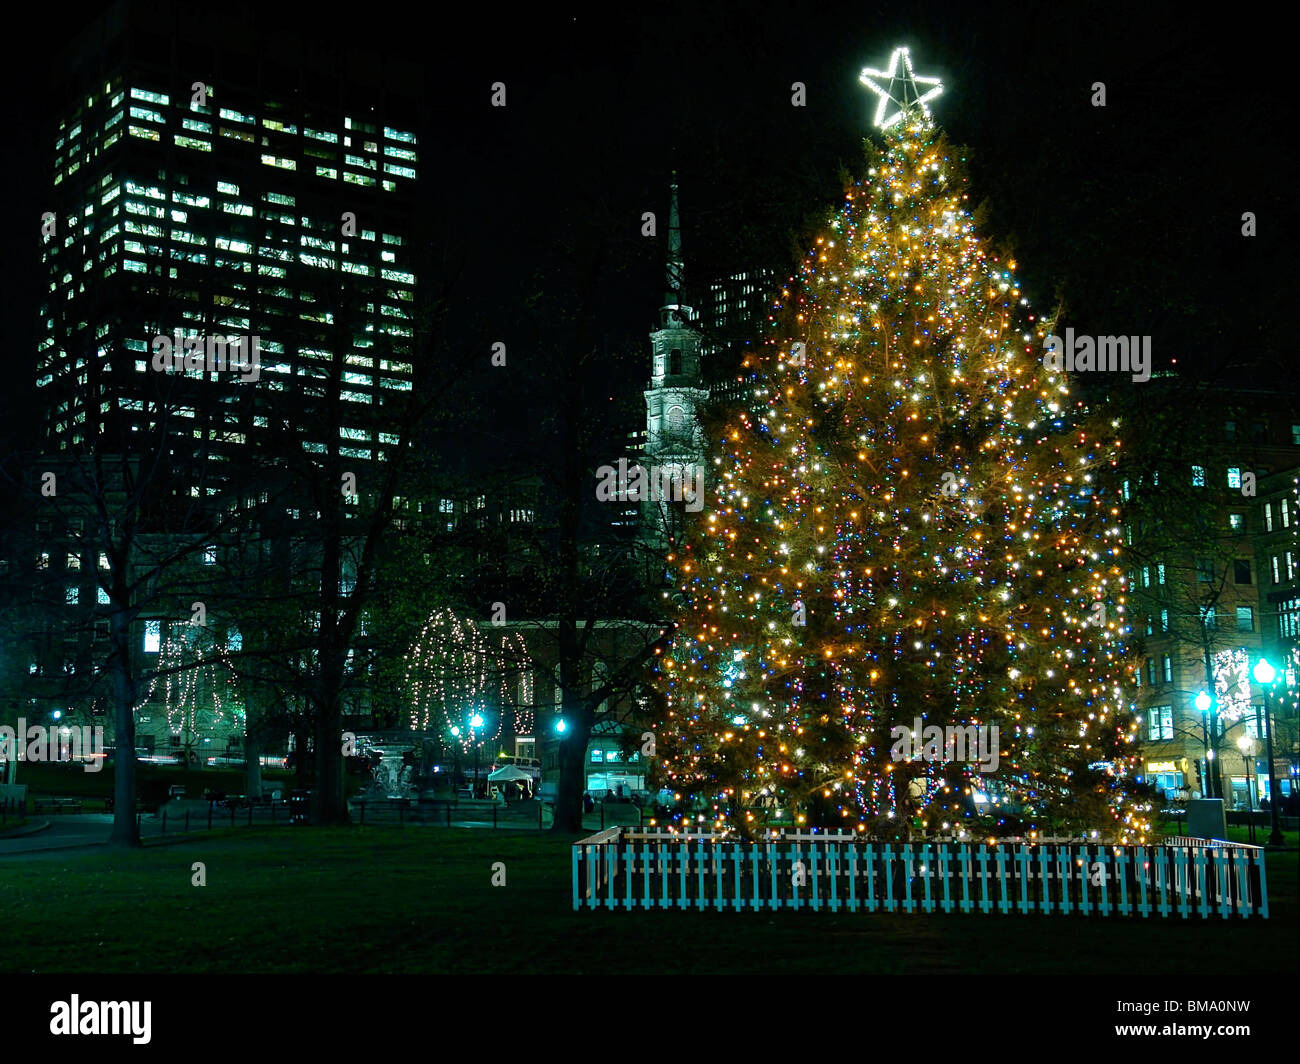 large decorated outdoor christmas tree on boston common lit up at night  sc 1 st  Alamy & large decorated outdoor christmas tree on boston common lit up at ...